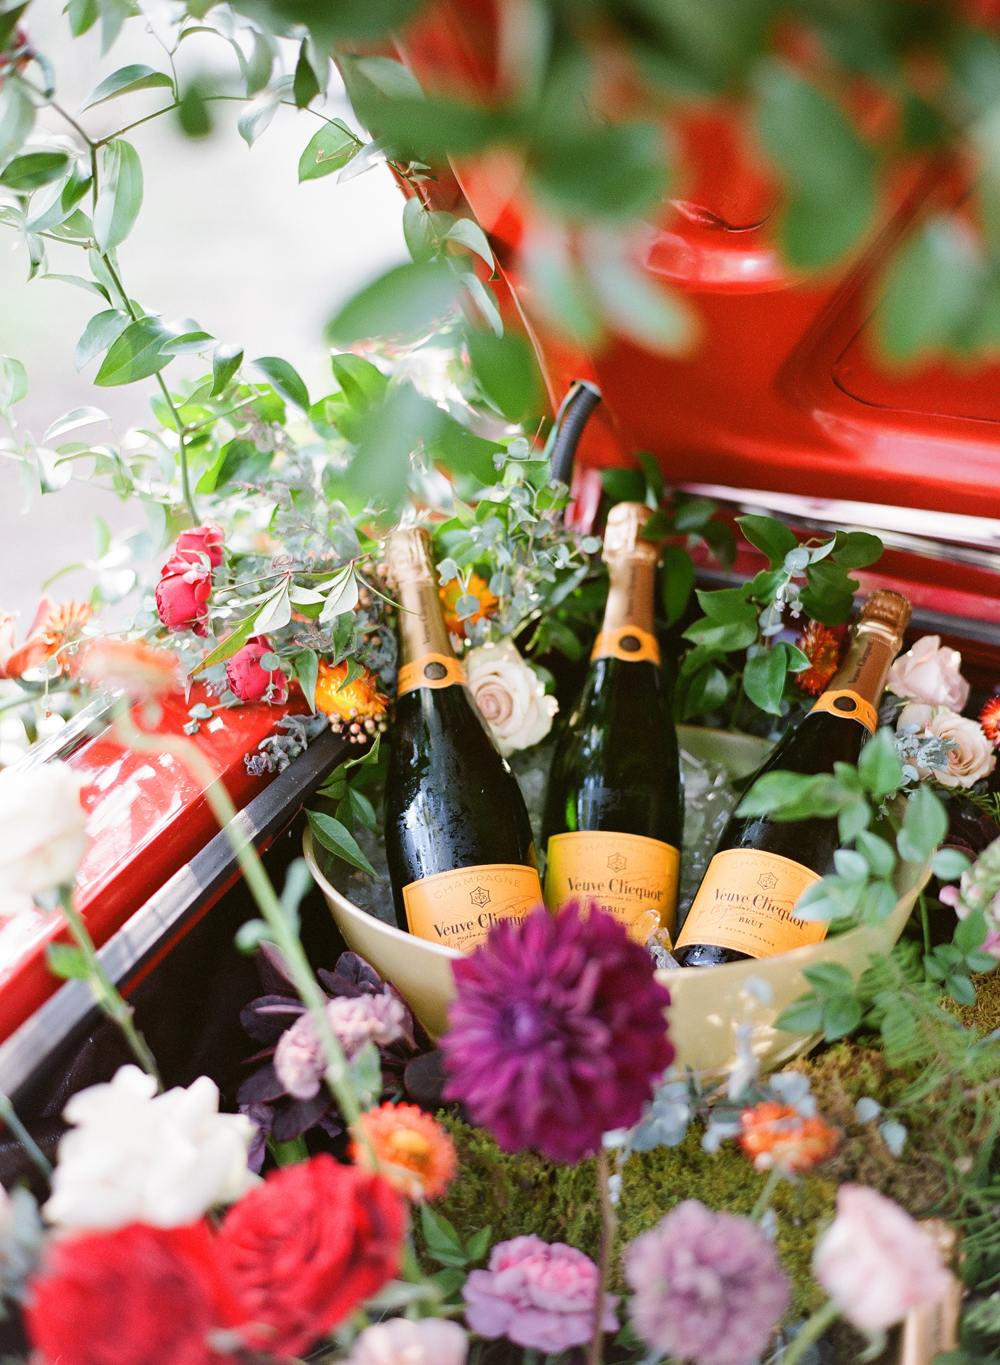 Veuve Clicquot Champagne in ice bucket surrounded by flowers